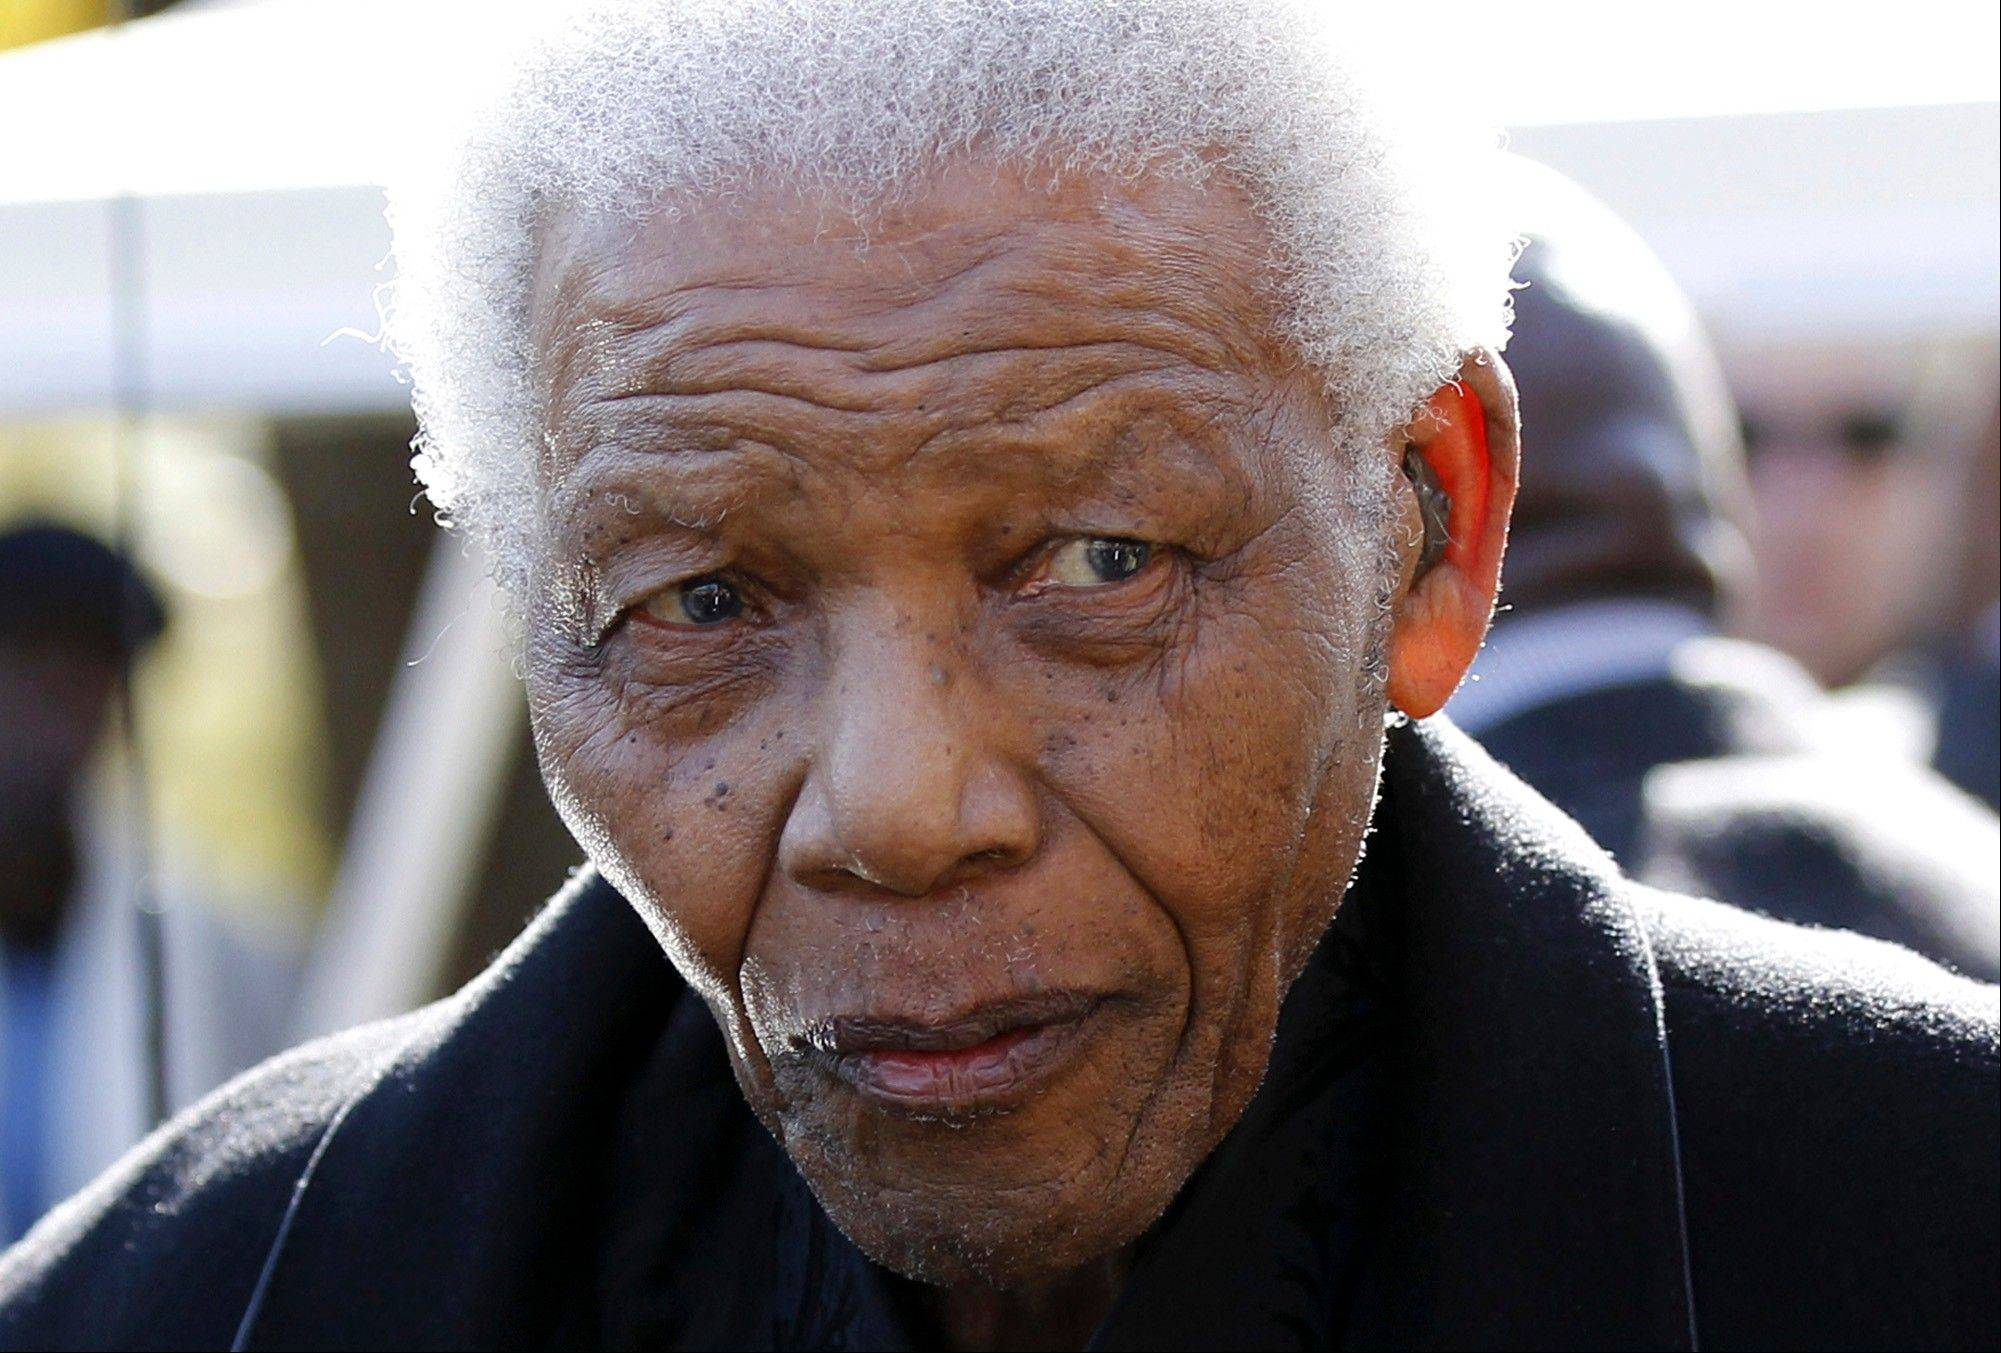 In this June 17, 2010, file photo, former South African President Nelson Mandela leaves the chapel after attending the funeral of his great-granddaughter Zenan